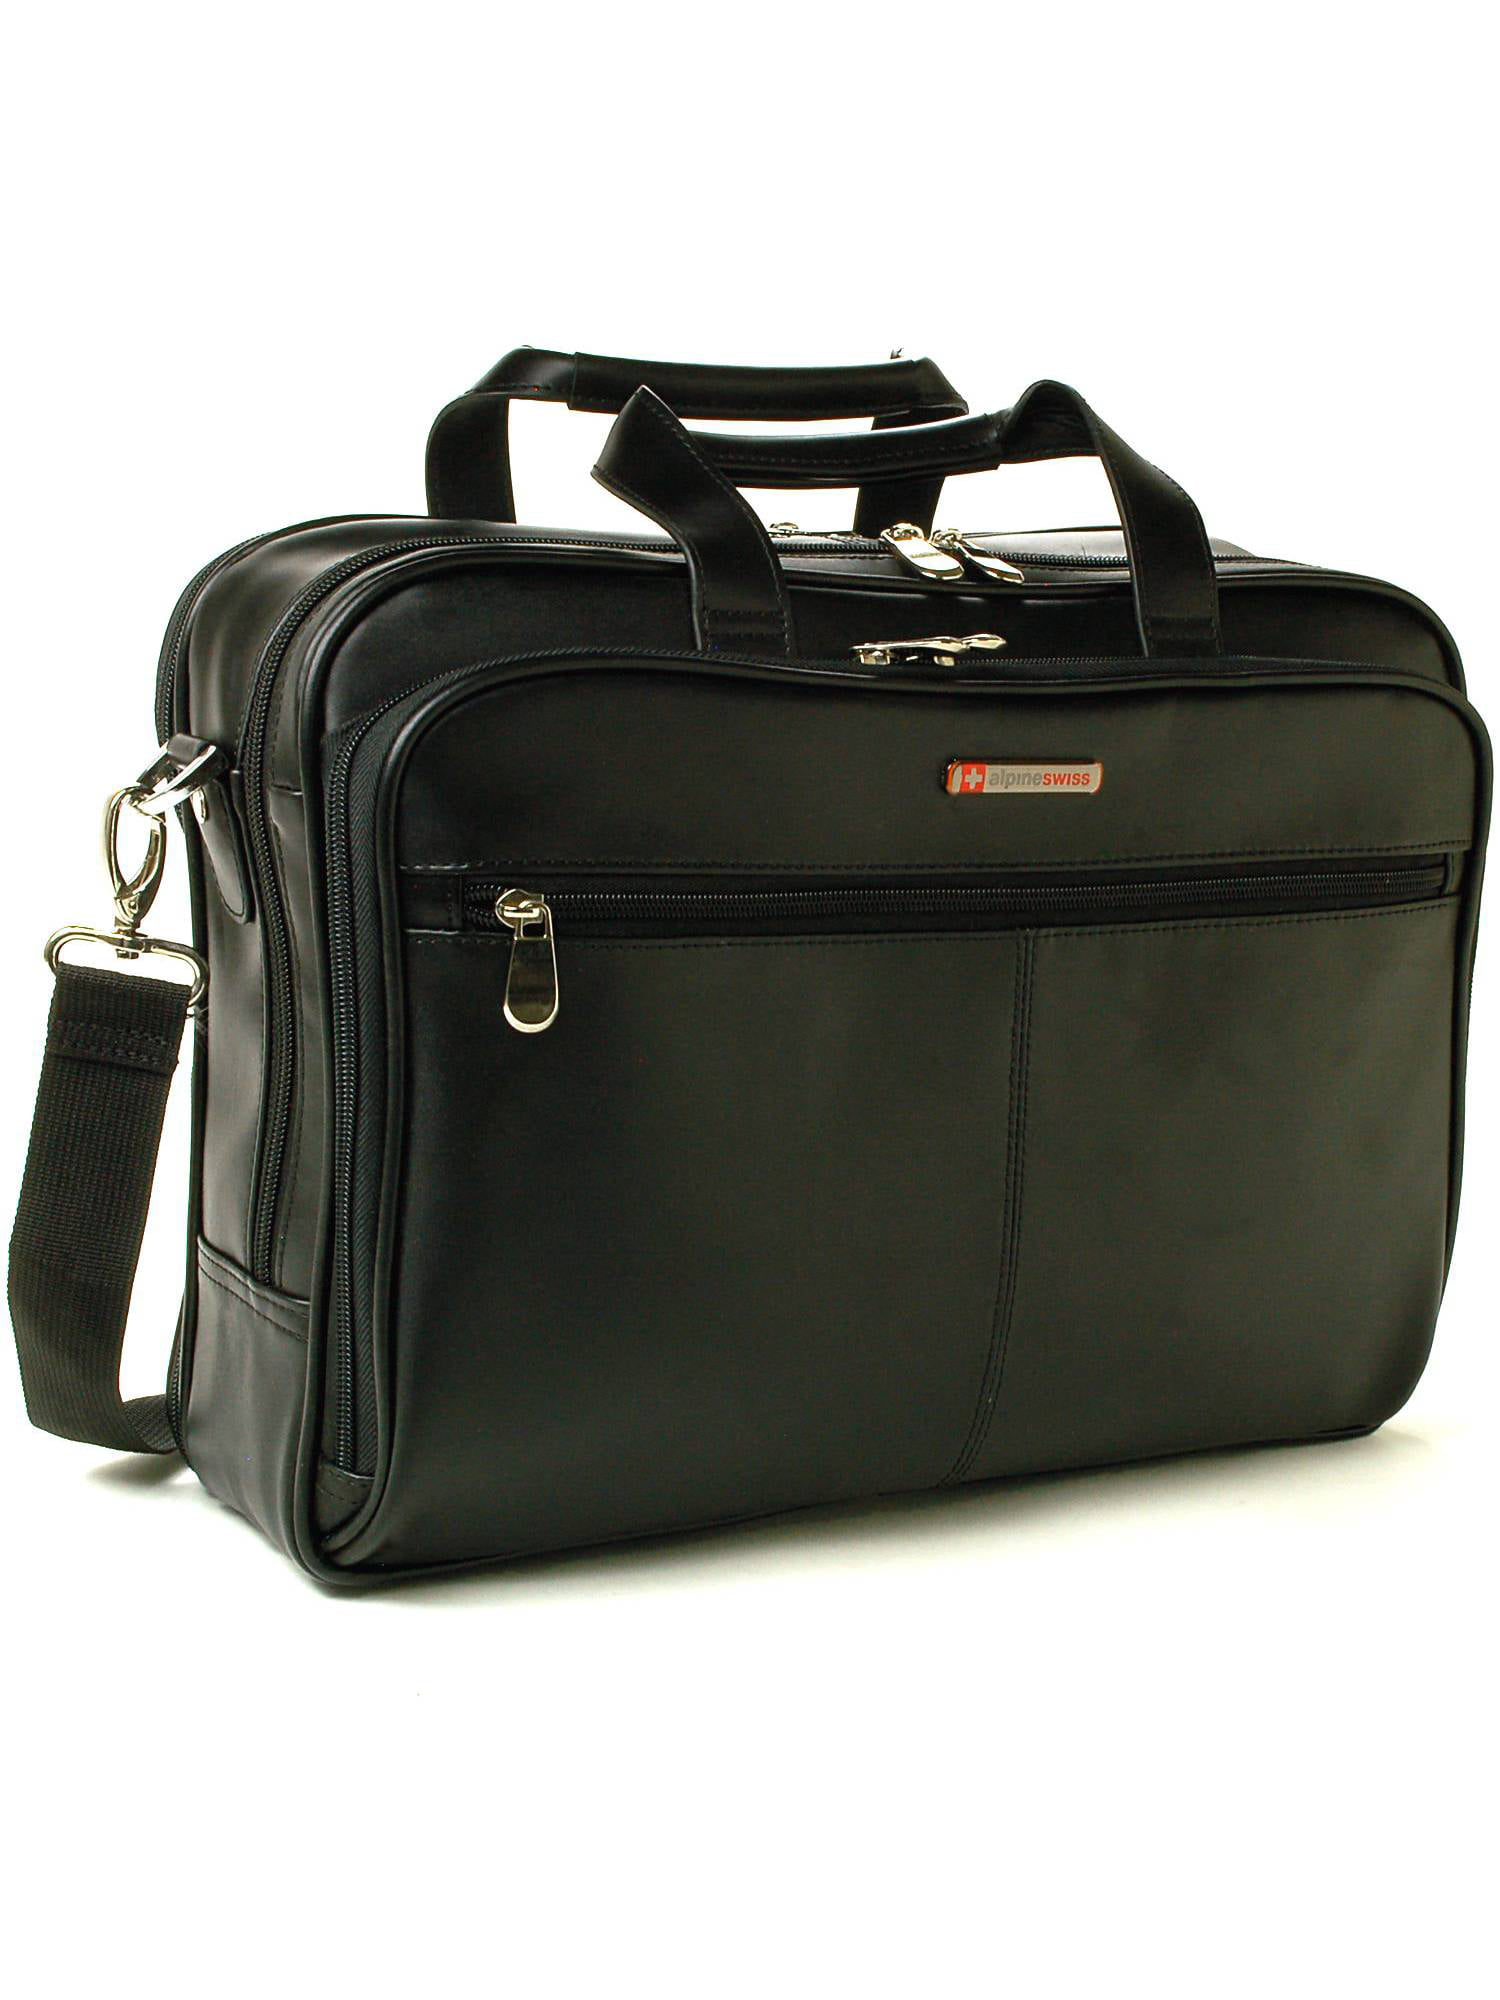 AlpineSwiss Leather Briefcase Laptop Case Messenger Bag Shoulder Strap Portfolio Black One Size by alpine swiss